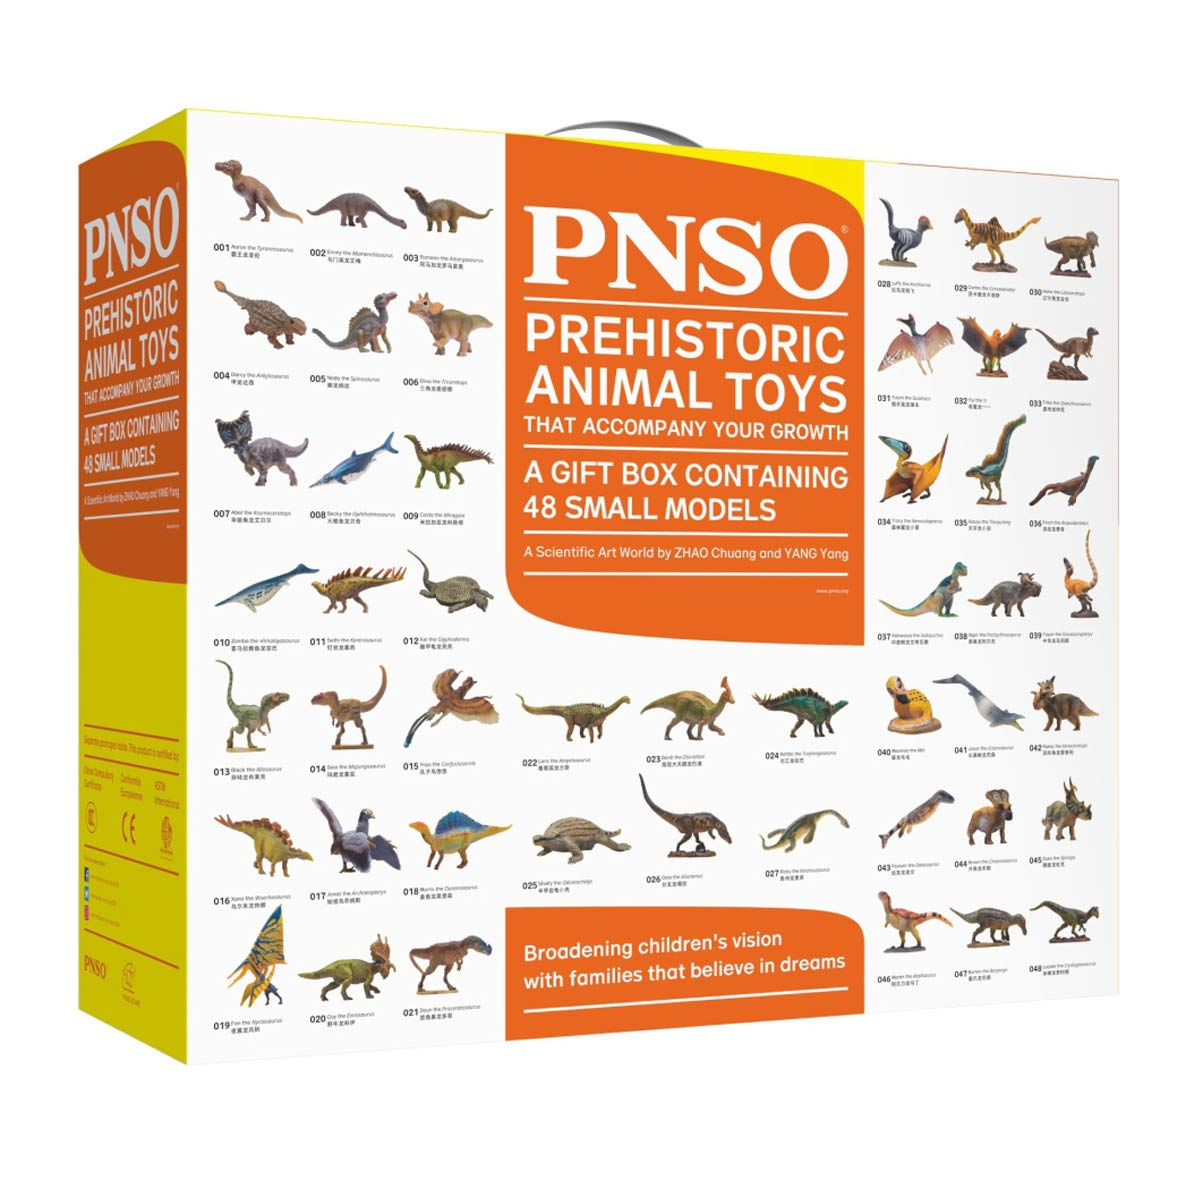 PNSO Prehistoric Animal Toys Gift Box Containing 48 Small Models by PNSO